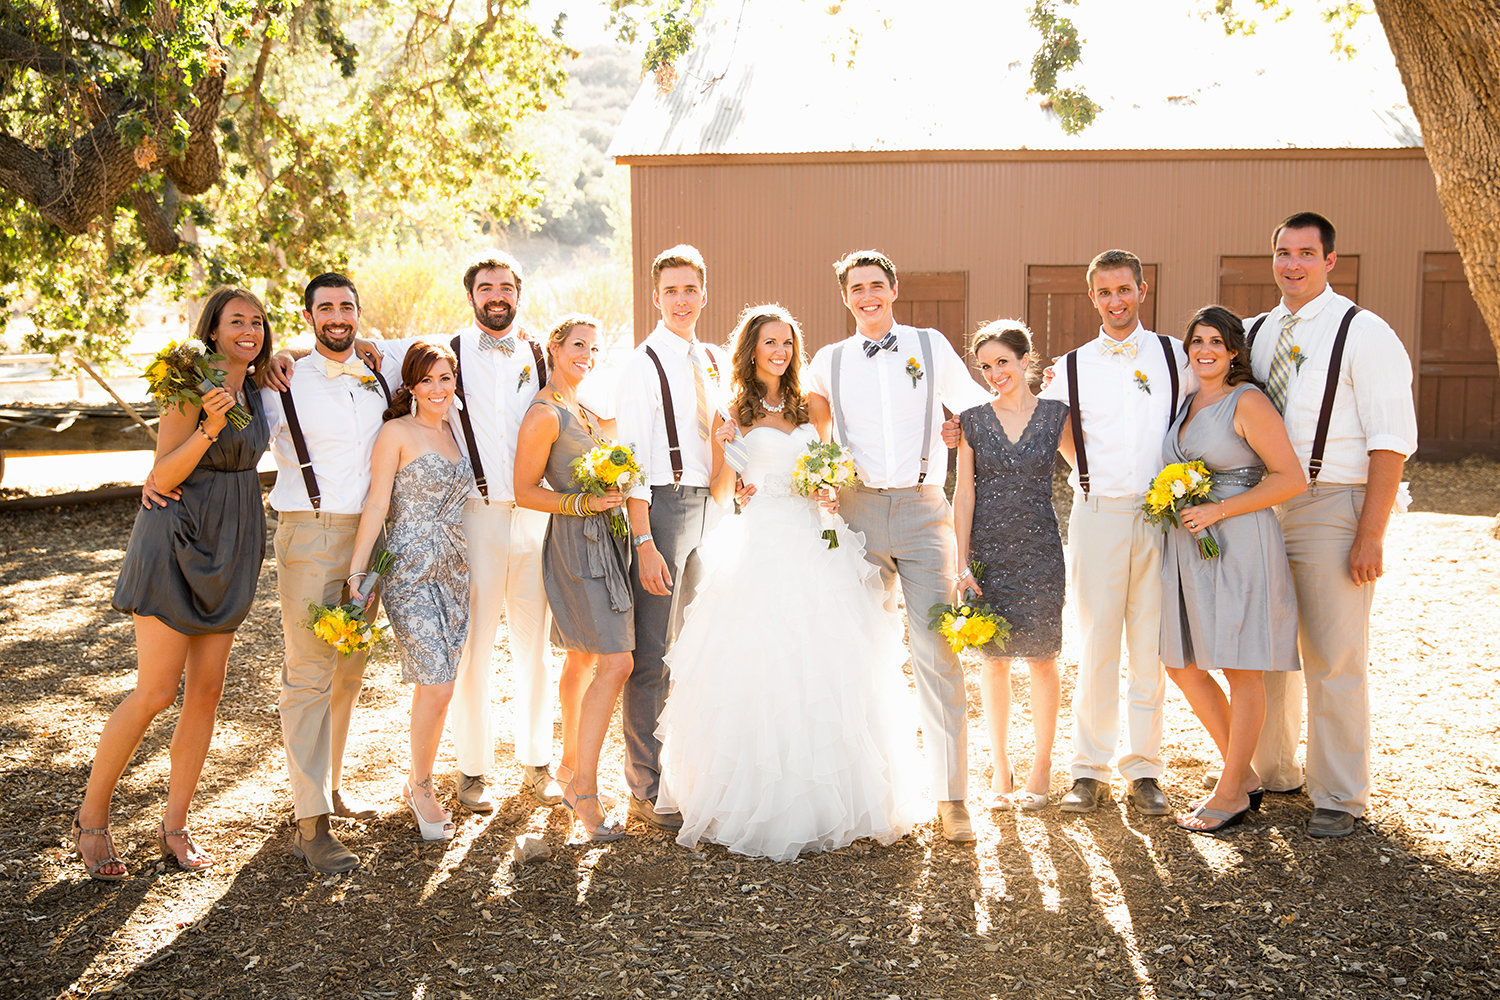 Destination wedding photos rustic bridal party